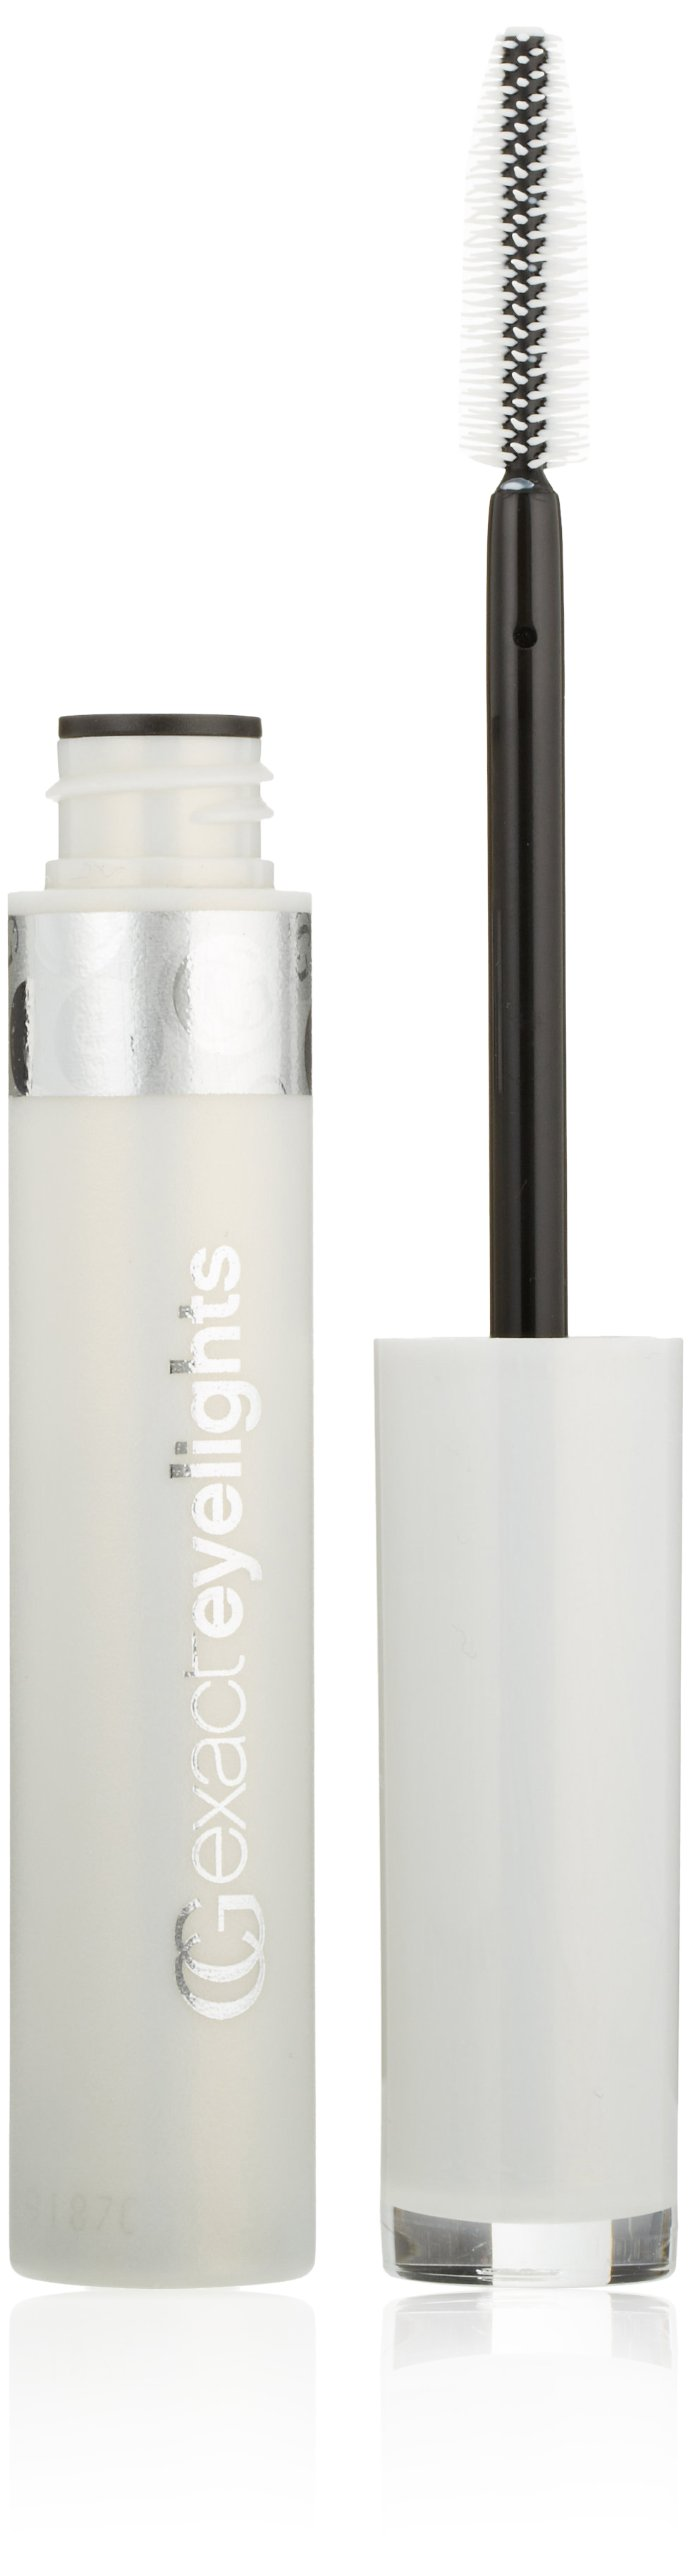 CoverGirl Exact EyeLights Regular Mascara, Black Sapphire 710 (for Blue Eyes), 0.24 Ounce Packages, 1 Count